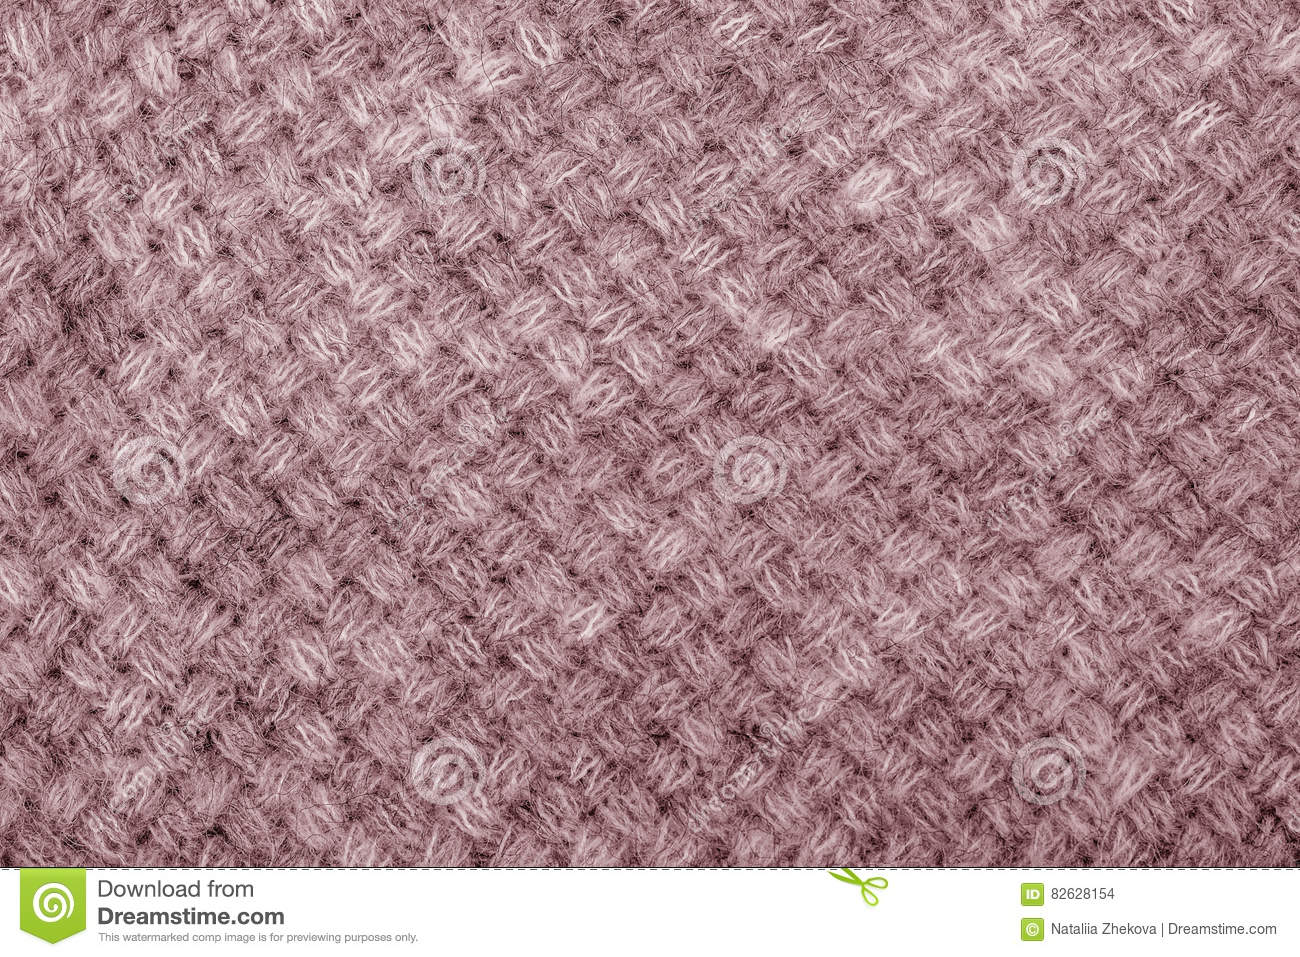 4c6e355c372ba Wool sweater texture close up. Knitted jersey background with a relief  pattern. Braids in machine knitting pattern